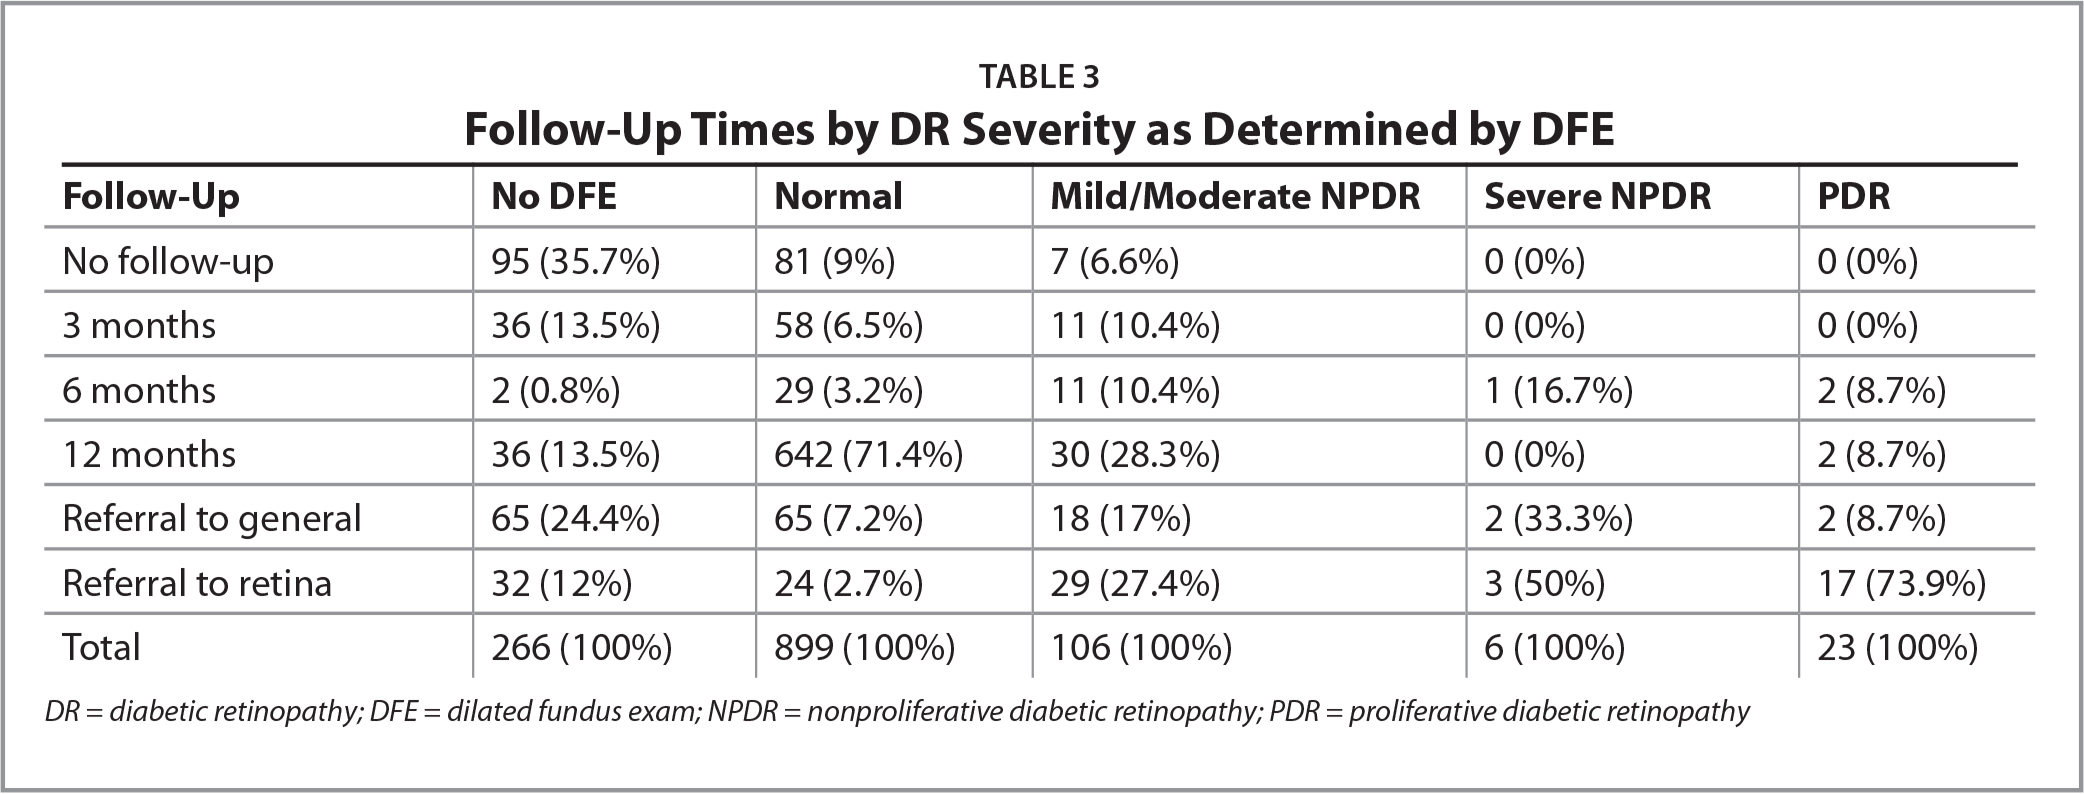 Follow-Up Times by DR Severity as Determined by DFE